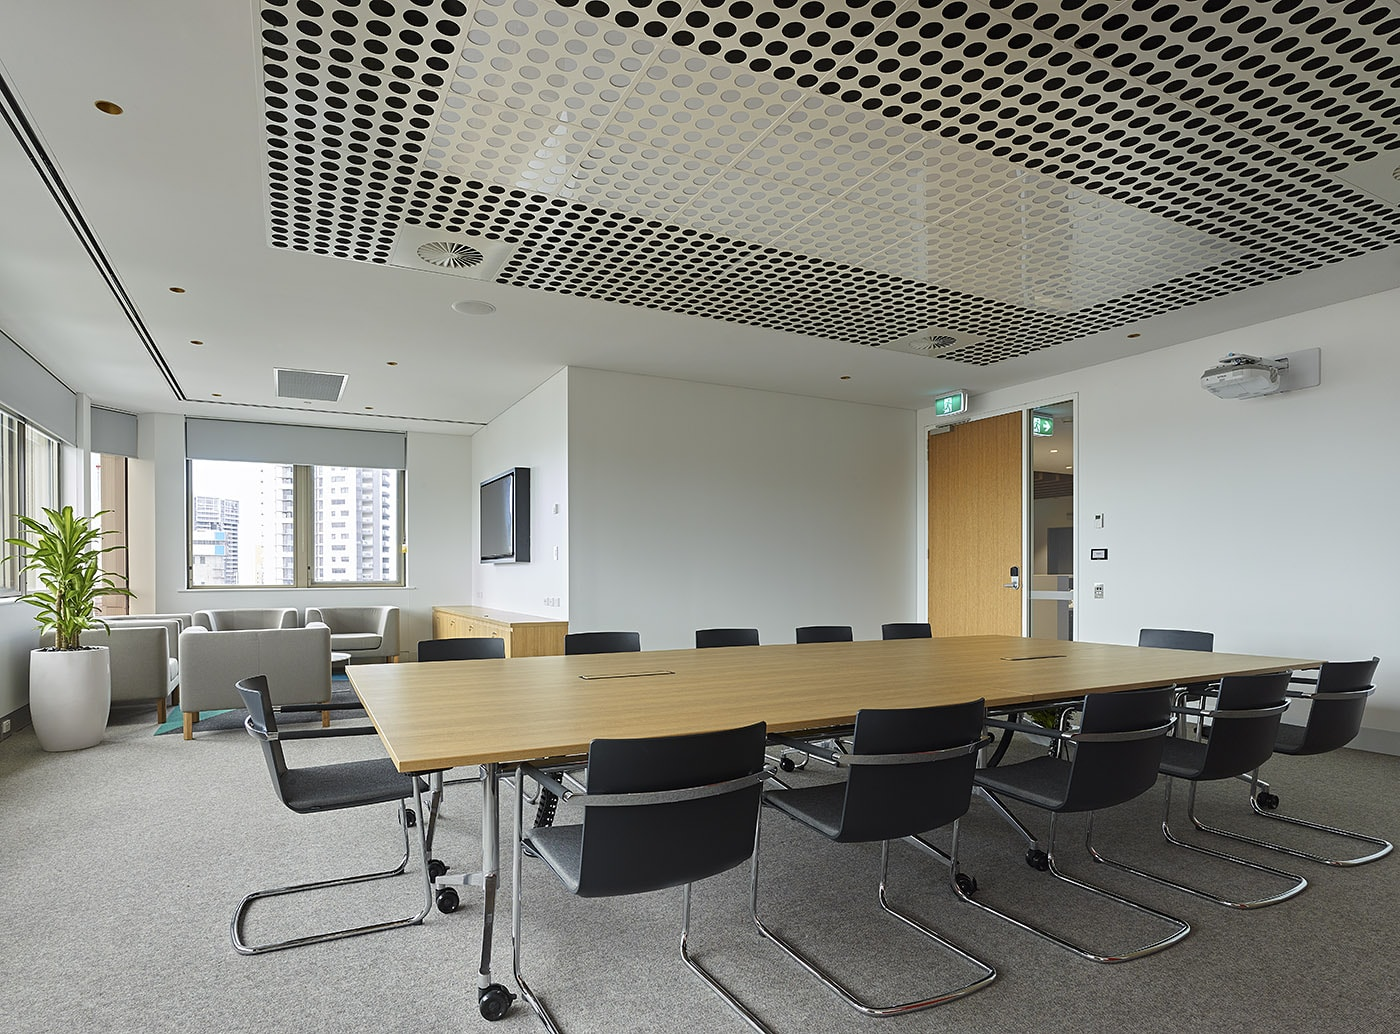 Ausure Brisbane Tenant Representation, Interior Design, Project & Construction Management Project Image 5 by PCG